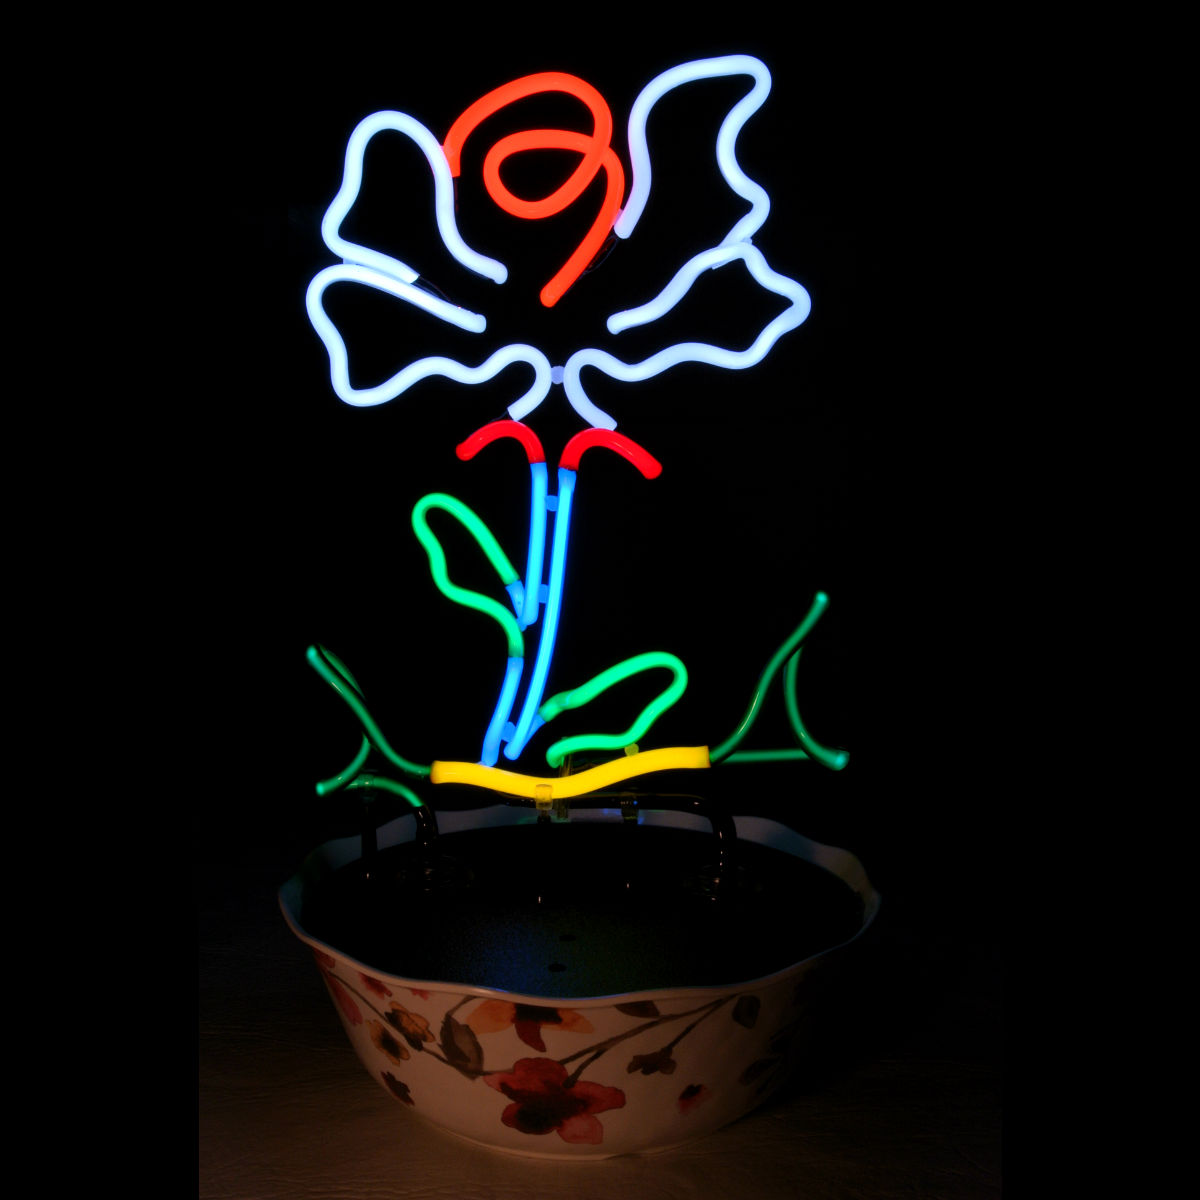 Decorative Custom Floral Neon Light Sculptures by John Barton - BartonNeonMagic.com